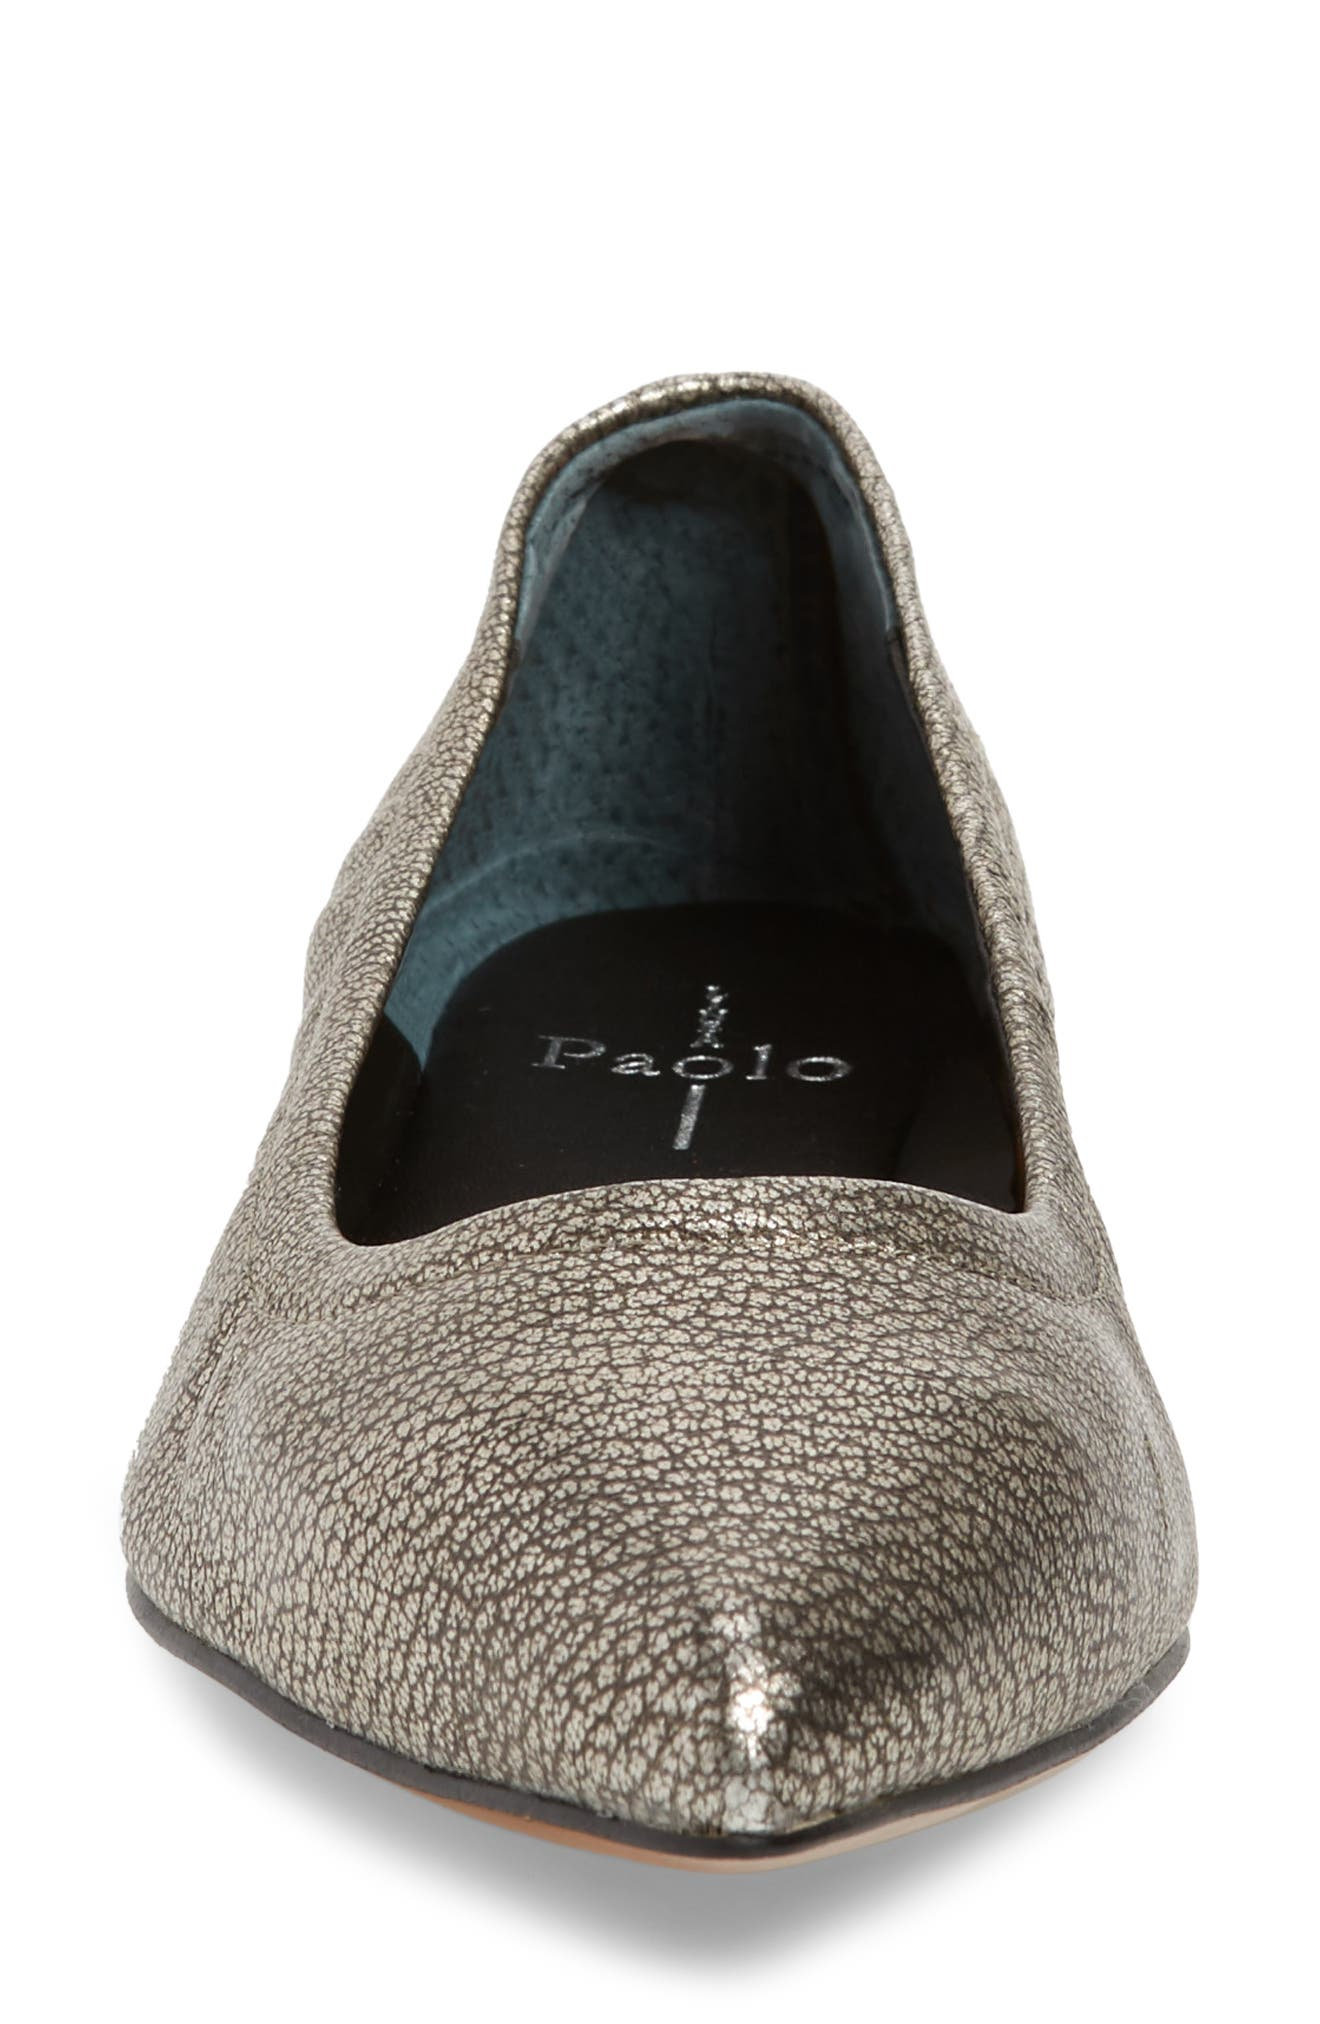 LINEA PAOLO, Nico Pointy Toe Flat, Alternate thumbnail 4, color, ANTHRACITE LEATHER